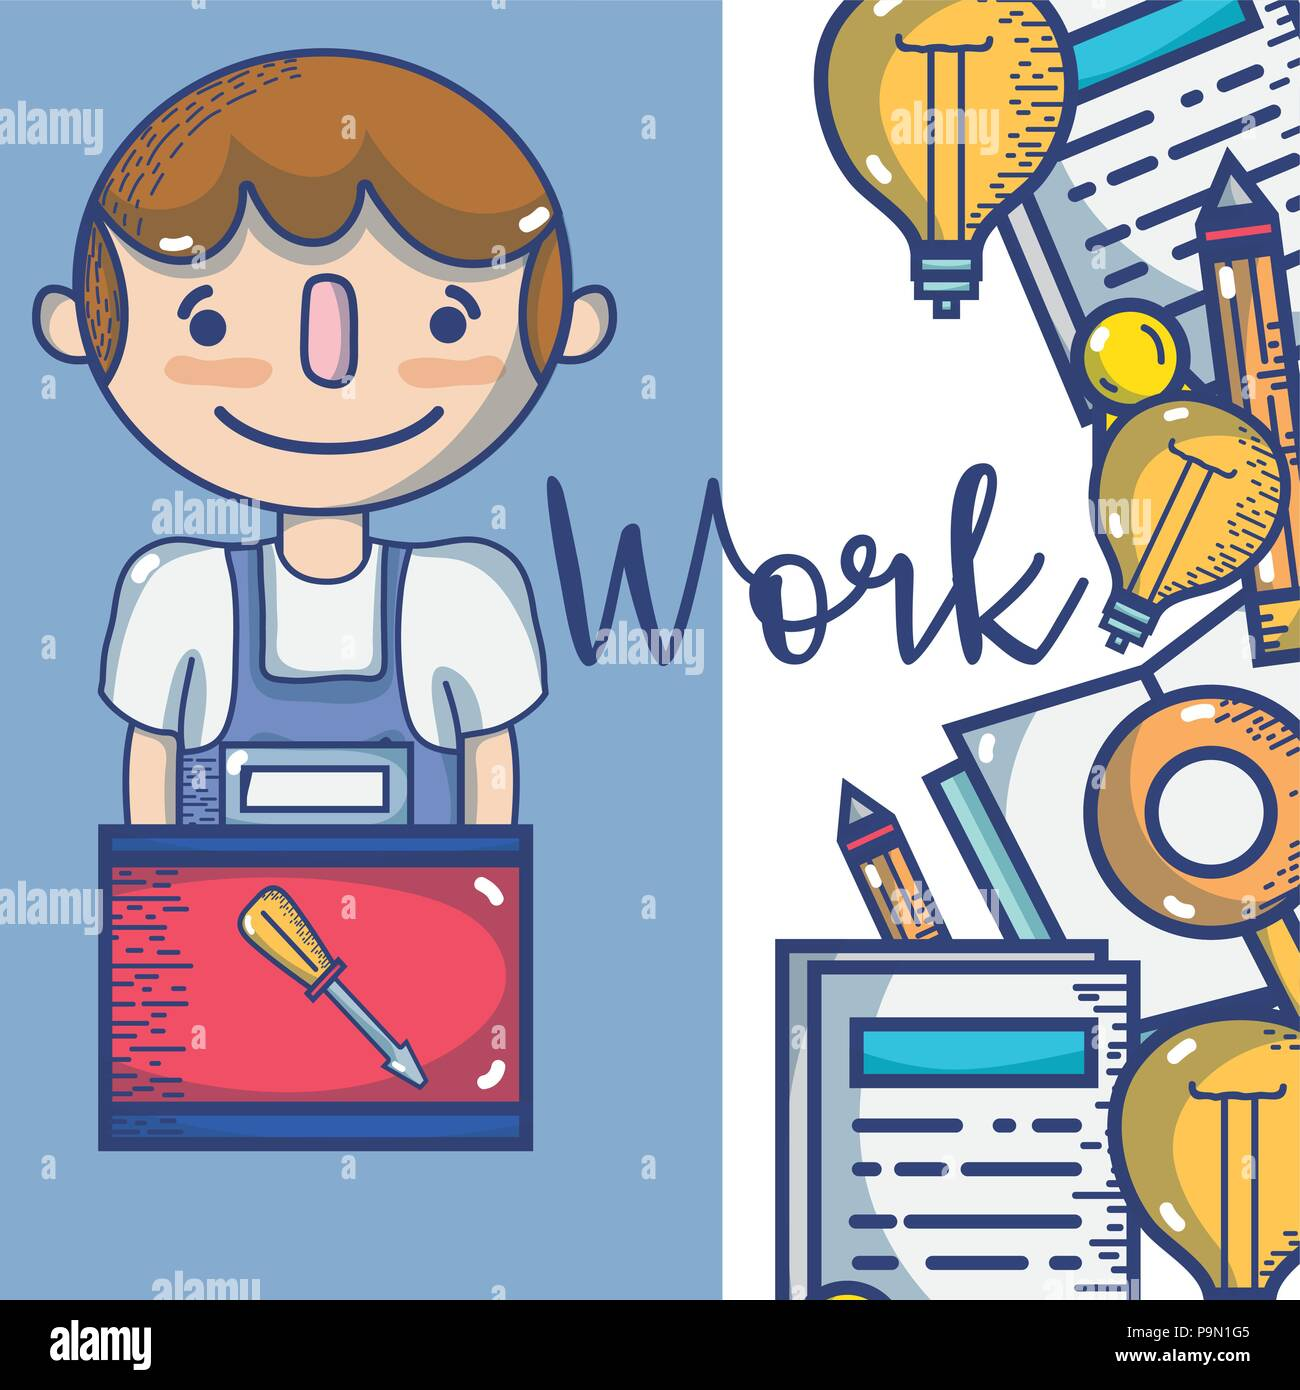 Career Tools Stock Photos & Career Tools Stock Images - Page 3 - Alamy